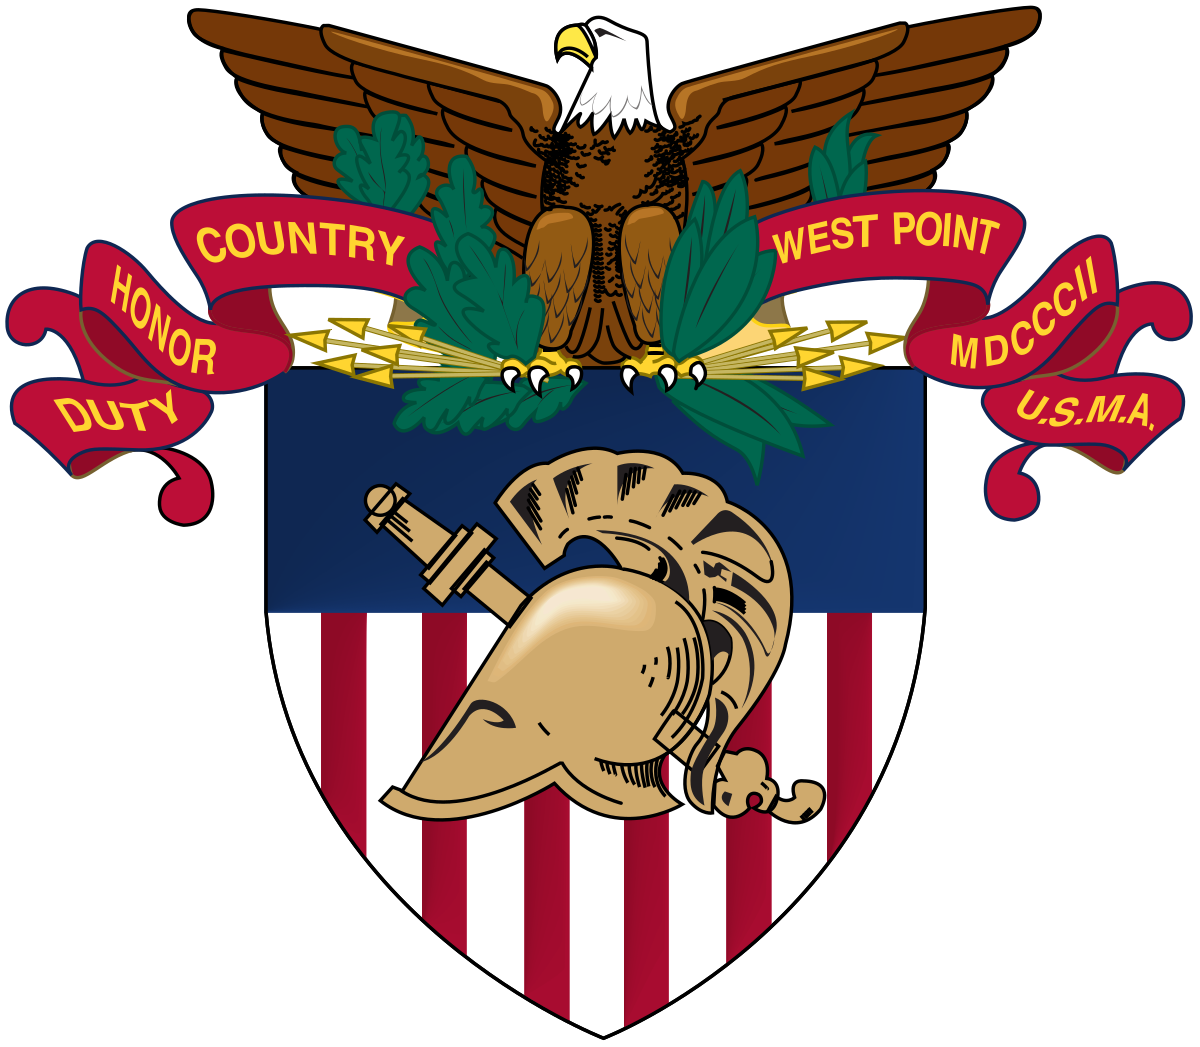 West Point Acad Logo